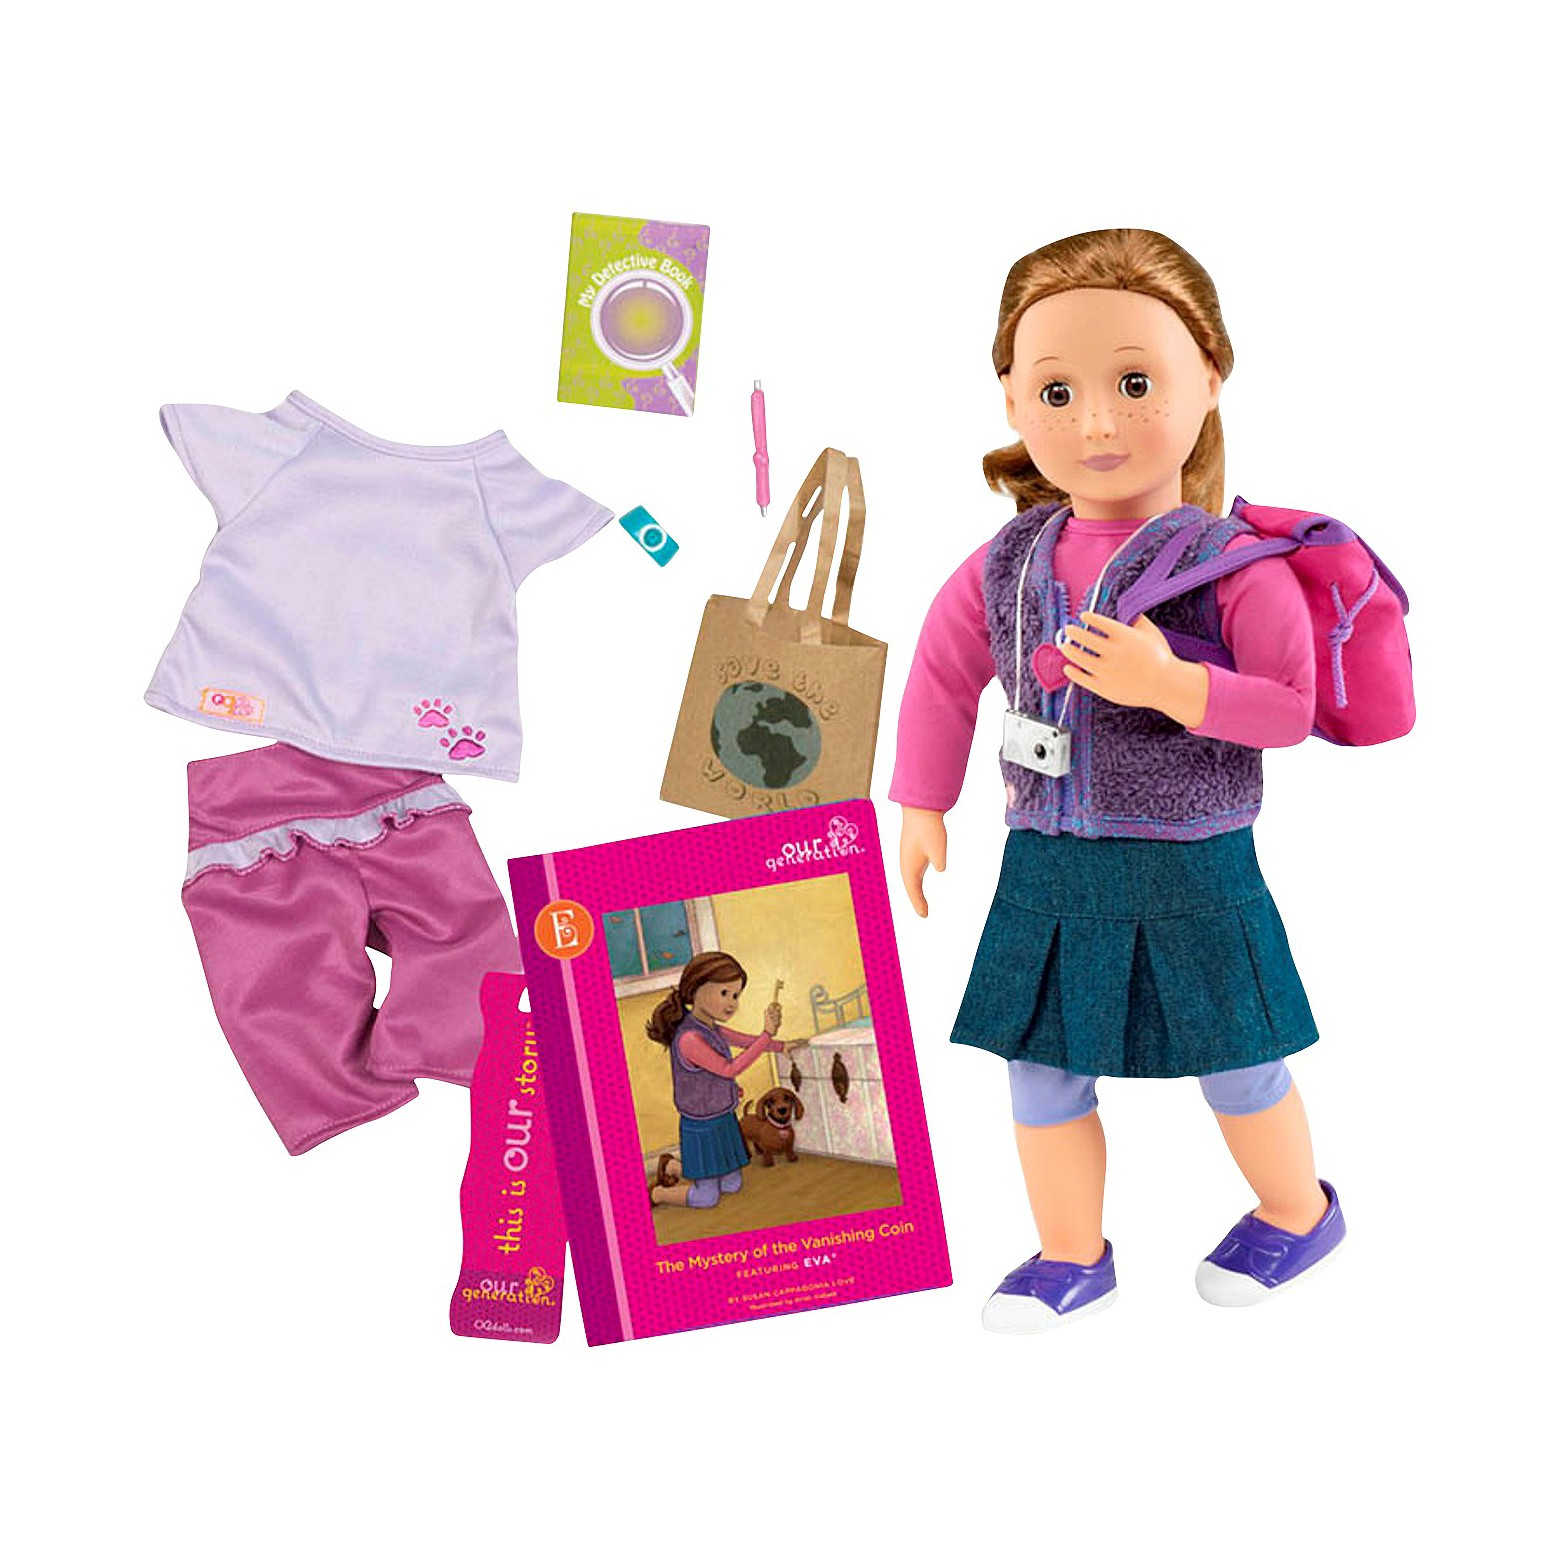 HOT! Extra 20% Off Our Generation Dolls